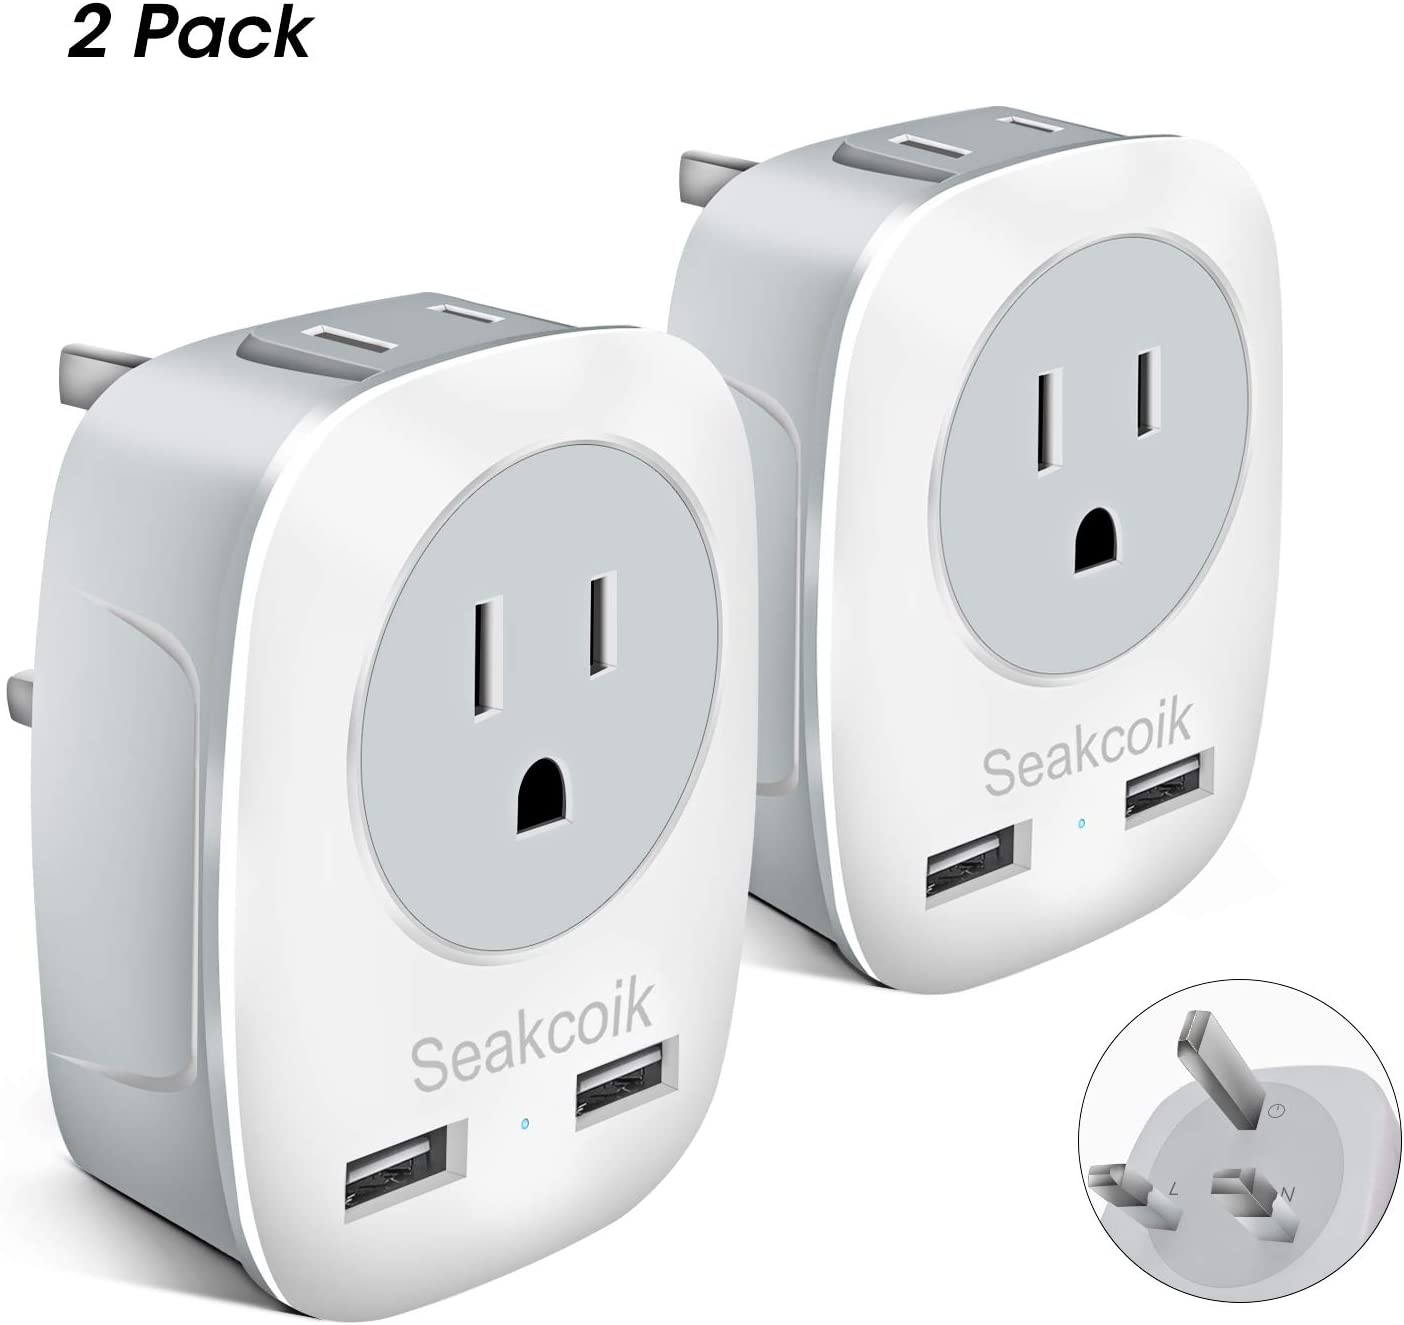 Seakcoik UK Travel Adapter 2 Pack, International Power Plug Adapter with 2 USB,Outlet Plug Adaptor for USA to London Scotland Dubai Ireland Hong Kong (Type G)